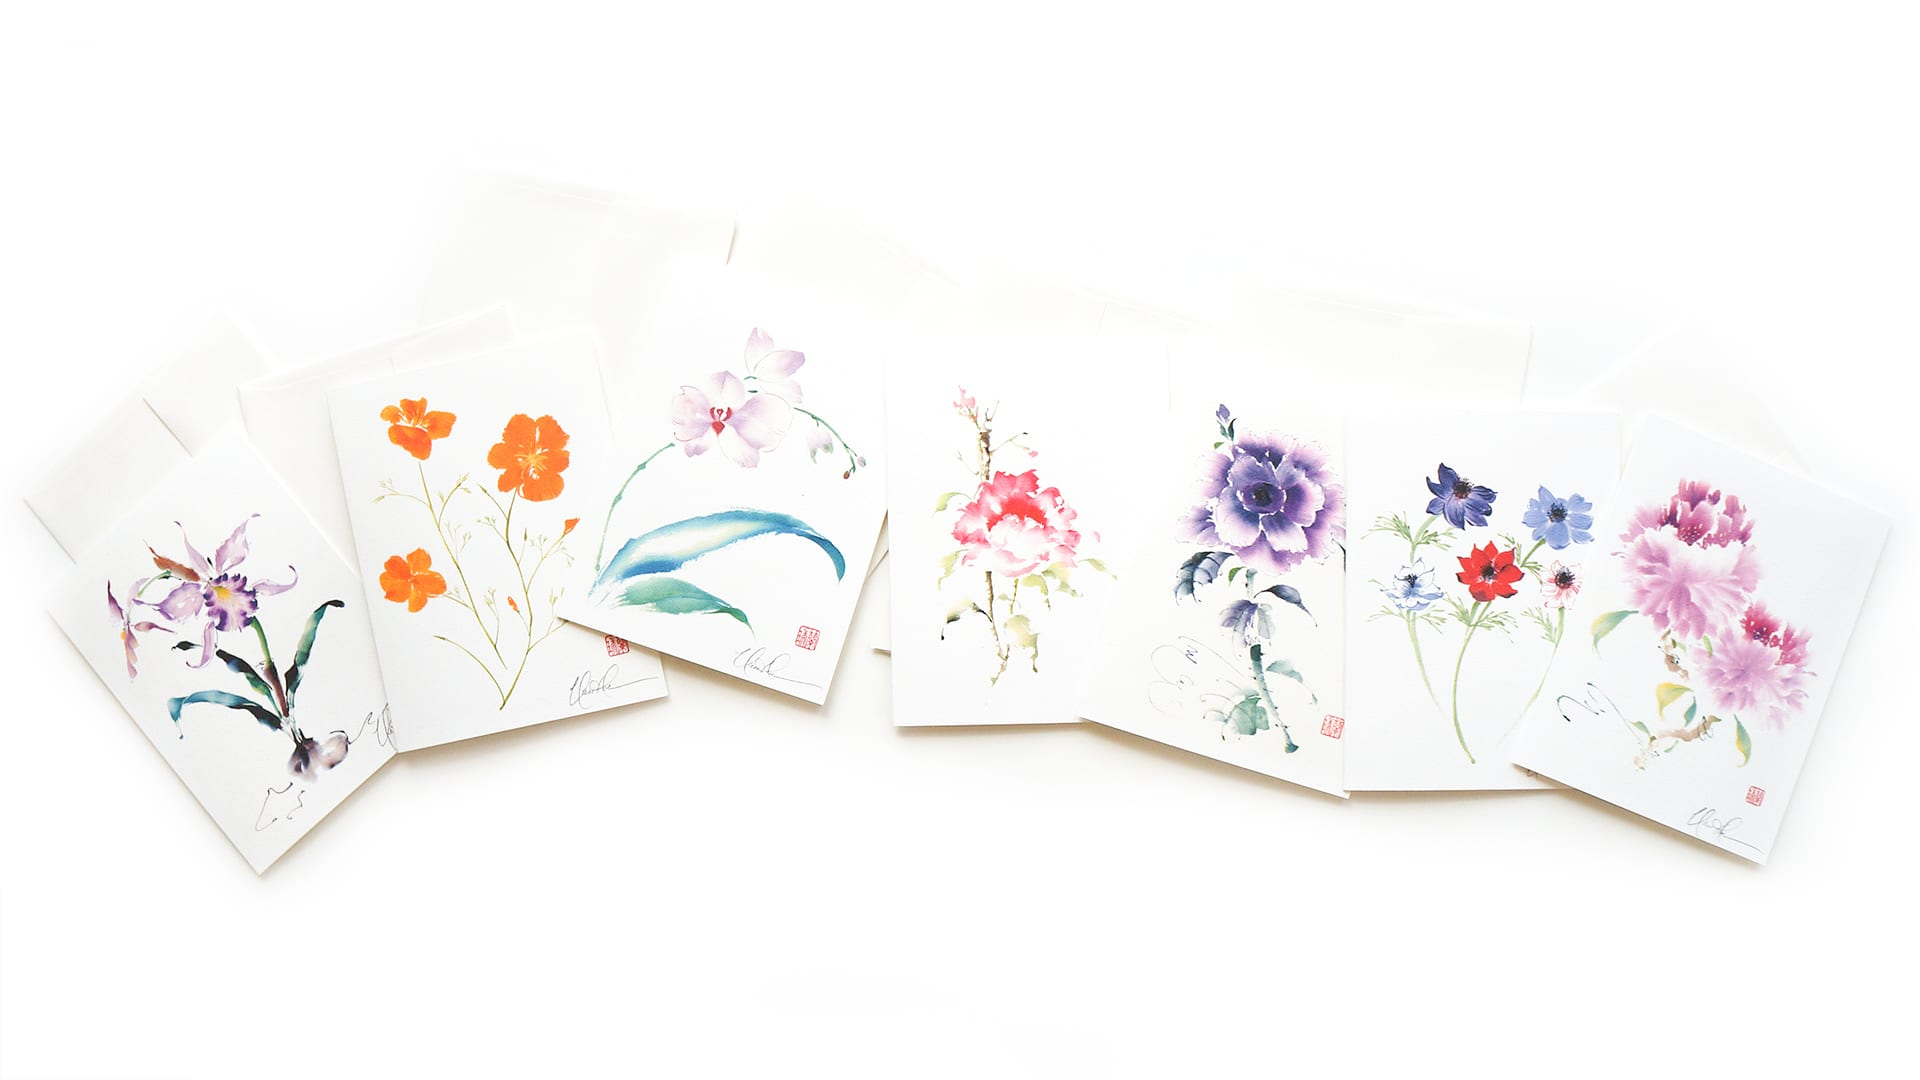 Floral Greeting Cards By Nan Rae